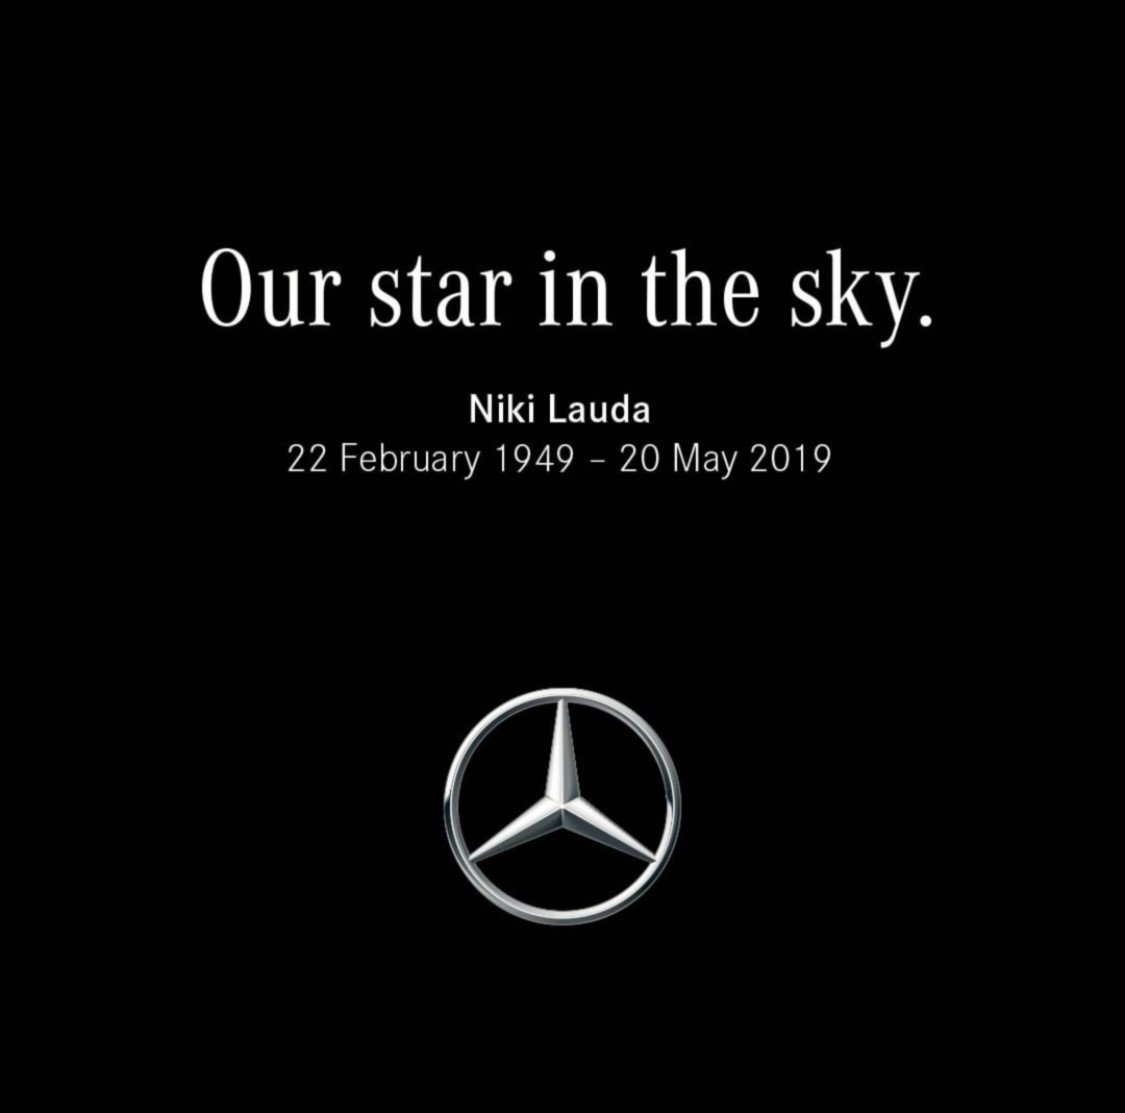 Rest in peace Niki Lauda. A legend on and off the track and a three-time Formula 1 world champion. #nikilauda #mercedesbenz https://t.co/S9bdG4WWbb